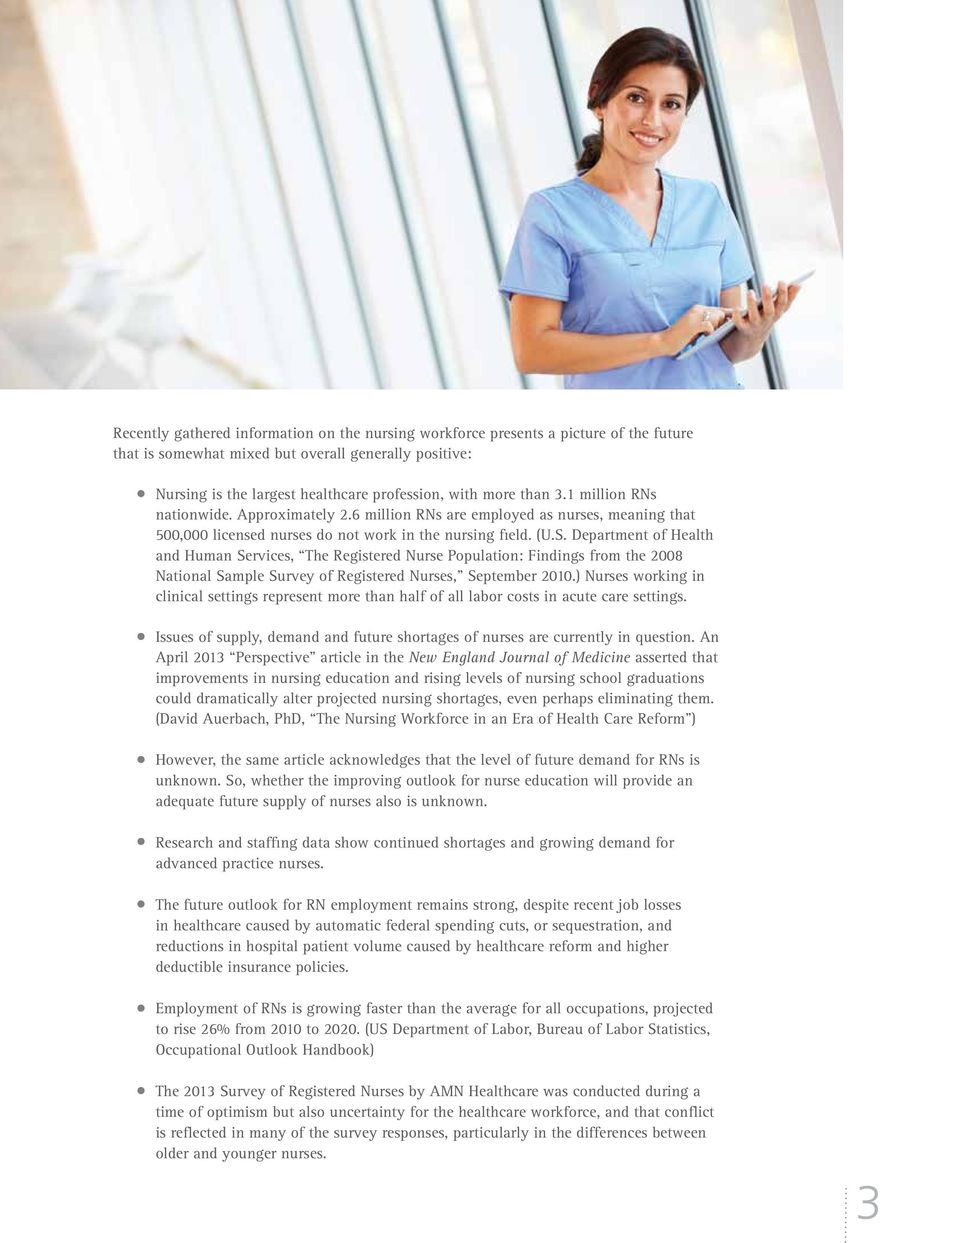 Department of Health and Human Services, The Registered Nurse Population: Findings from the 2008 National Sample Survey of Registered Nurses, September 2010.